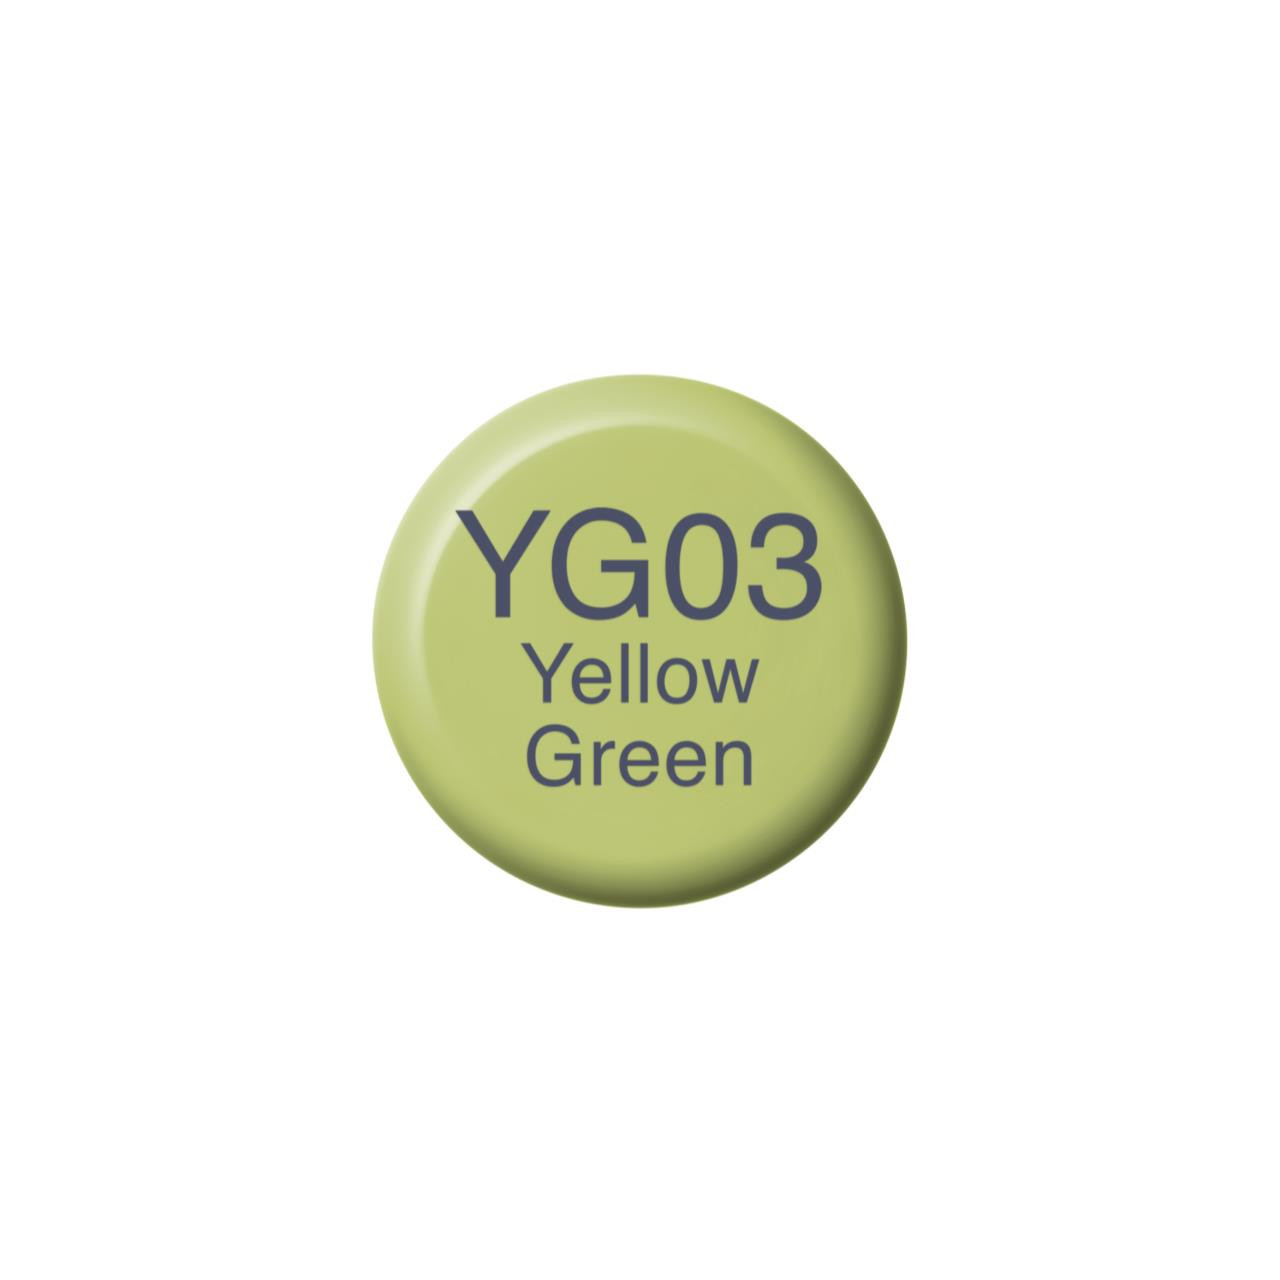 YG03 Yellow Green, Copic Ink - 4511338058367